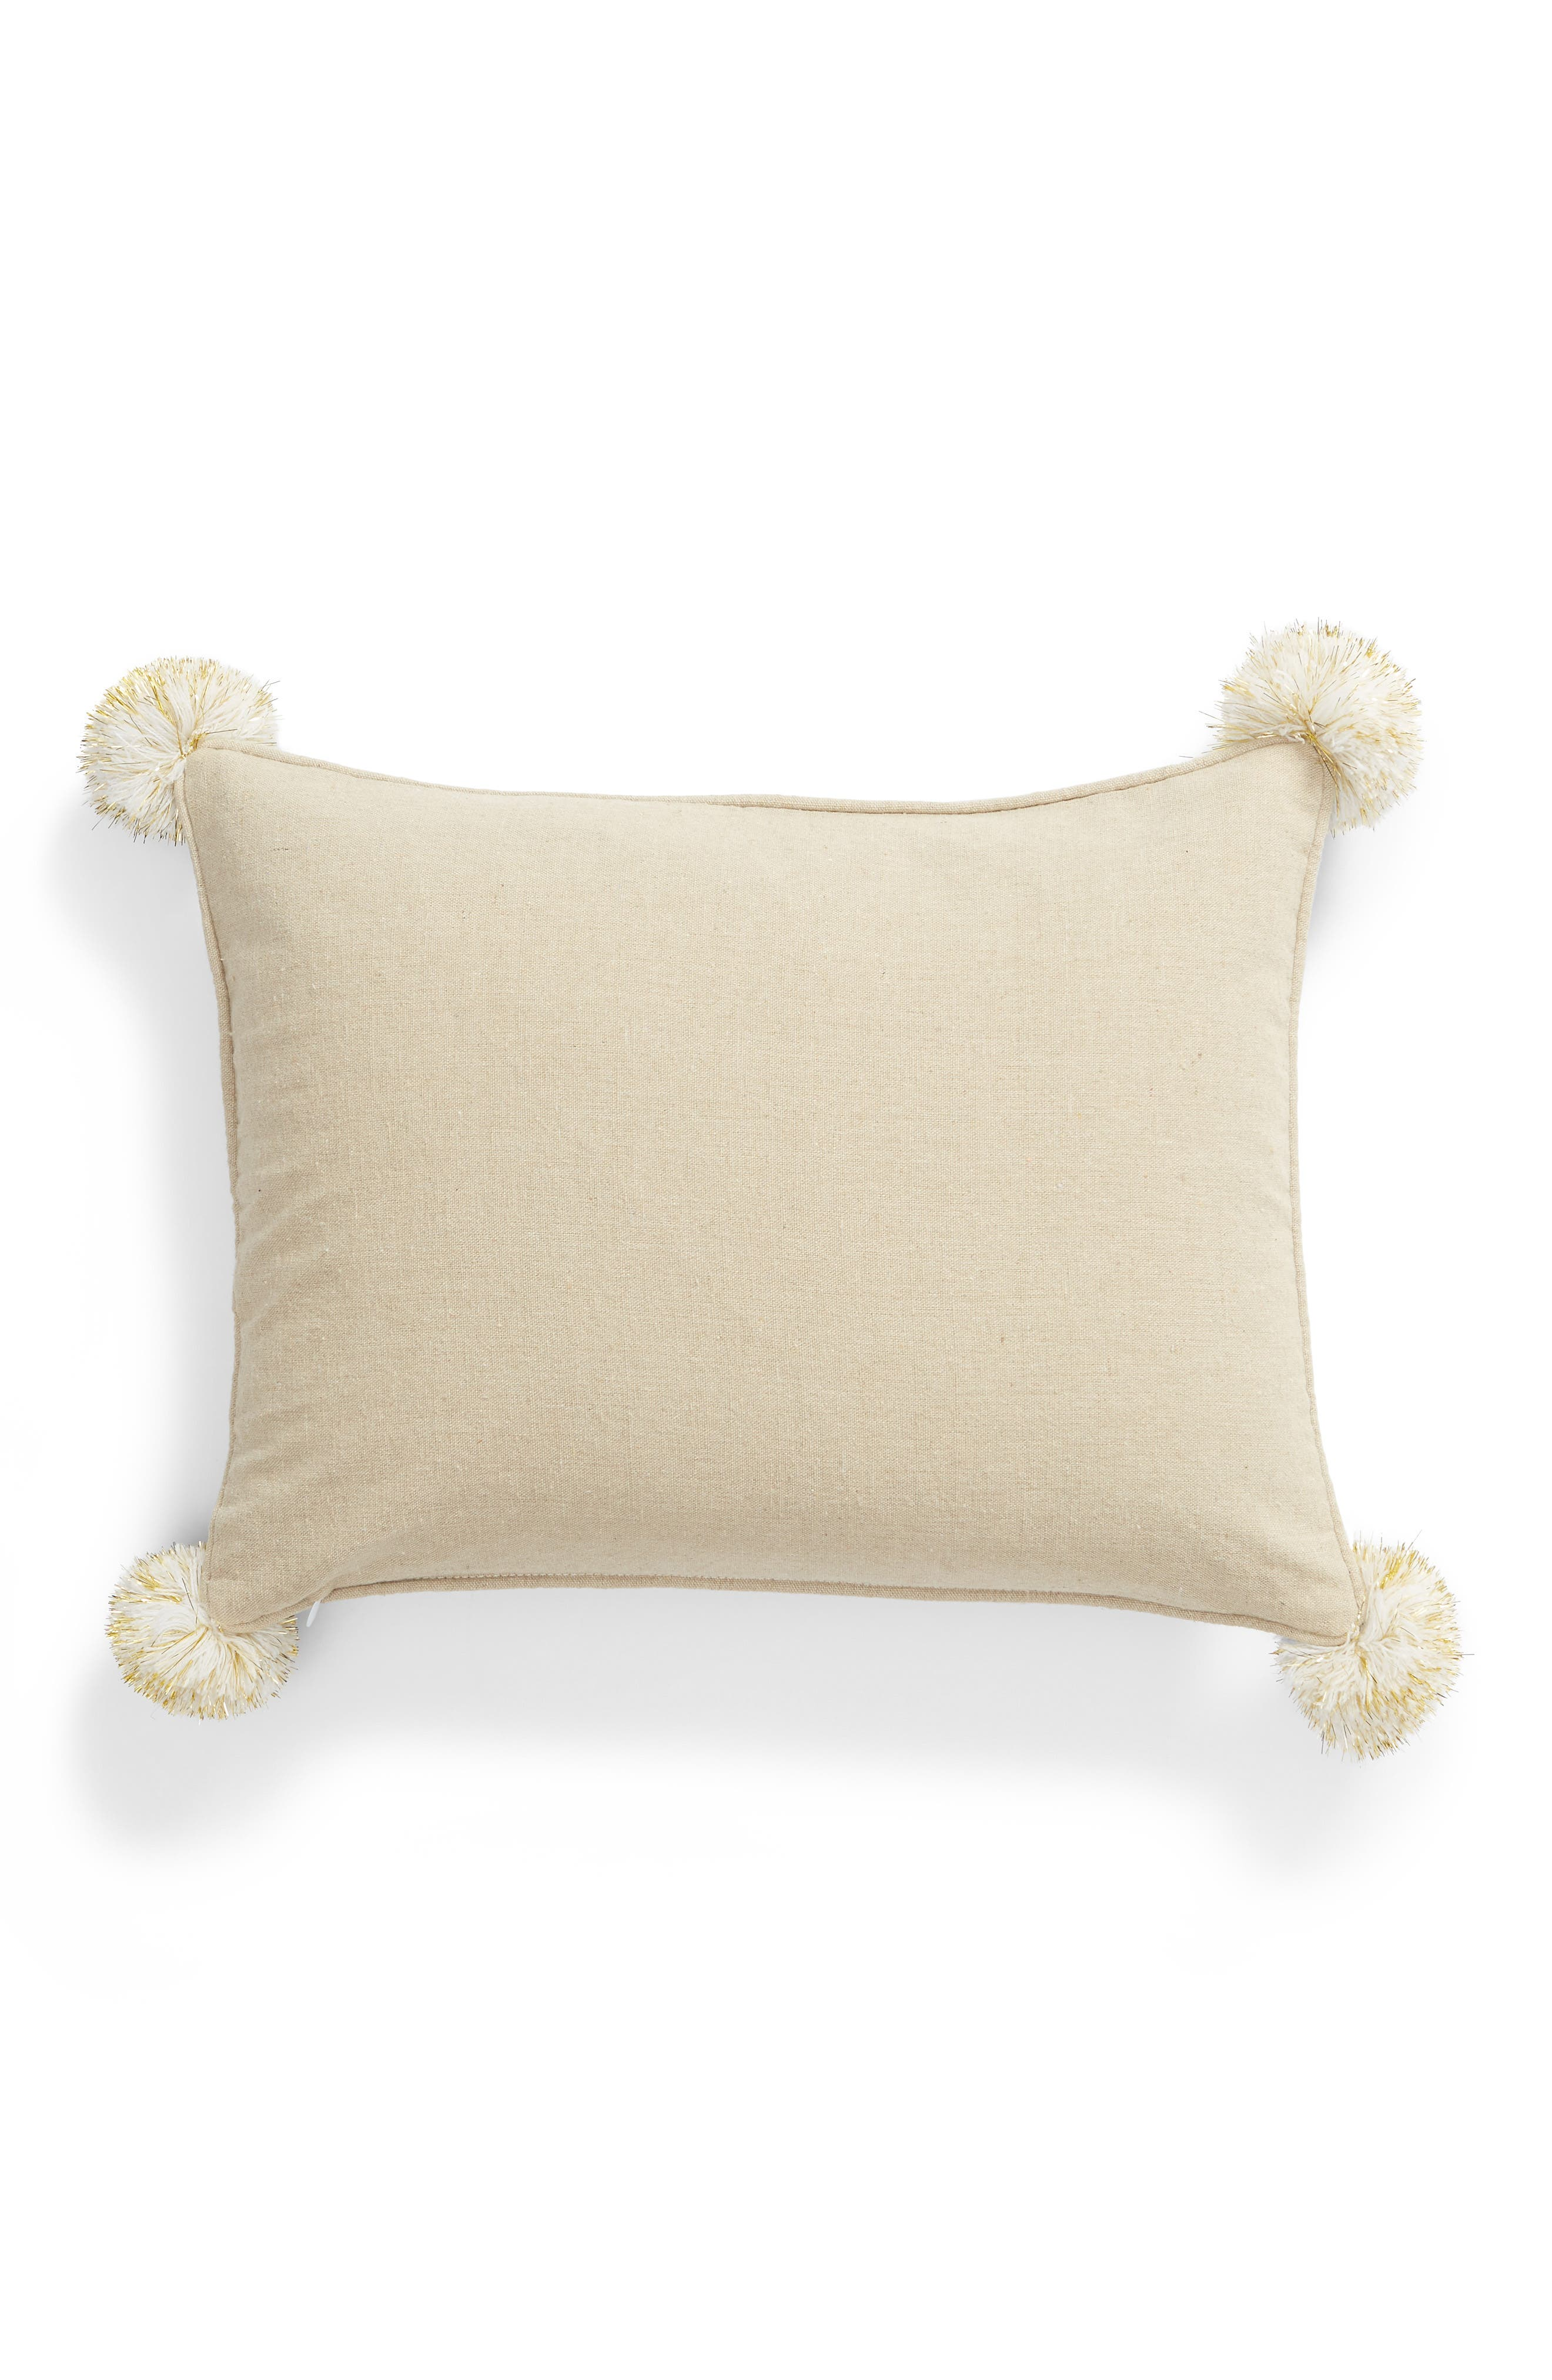 Emory Pom Elephant Accent Pillow,                             Alternate thumbnail 2, color,                             400